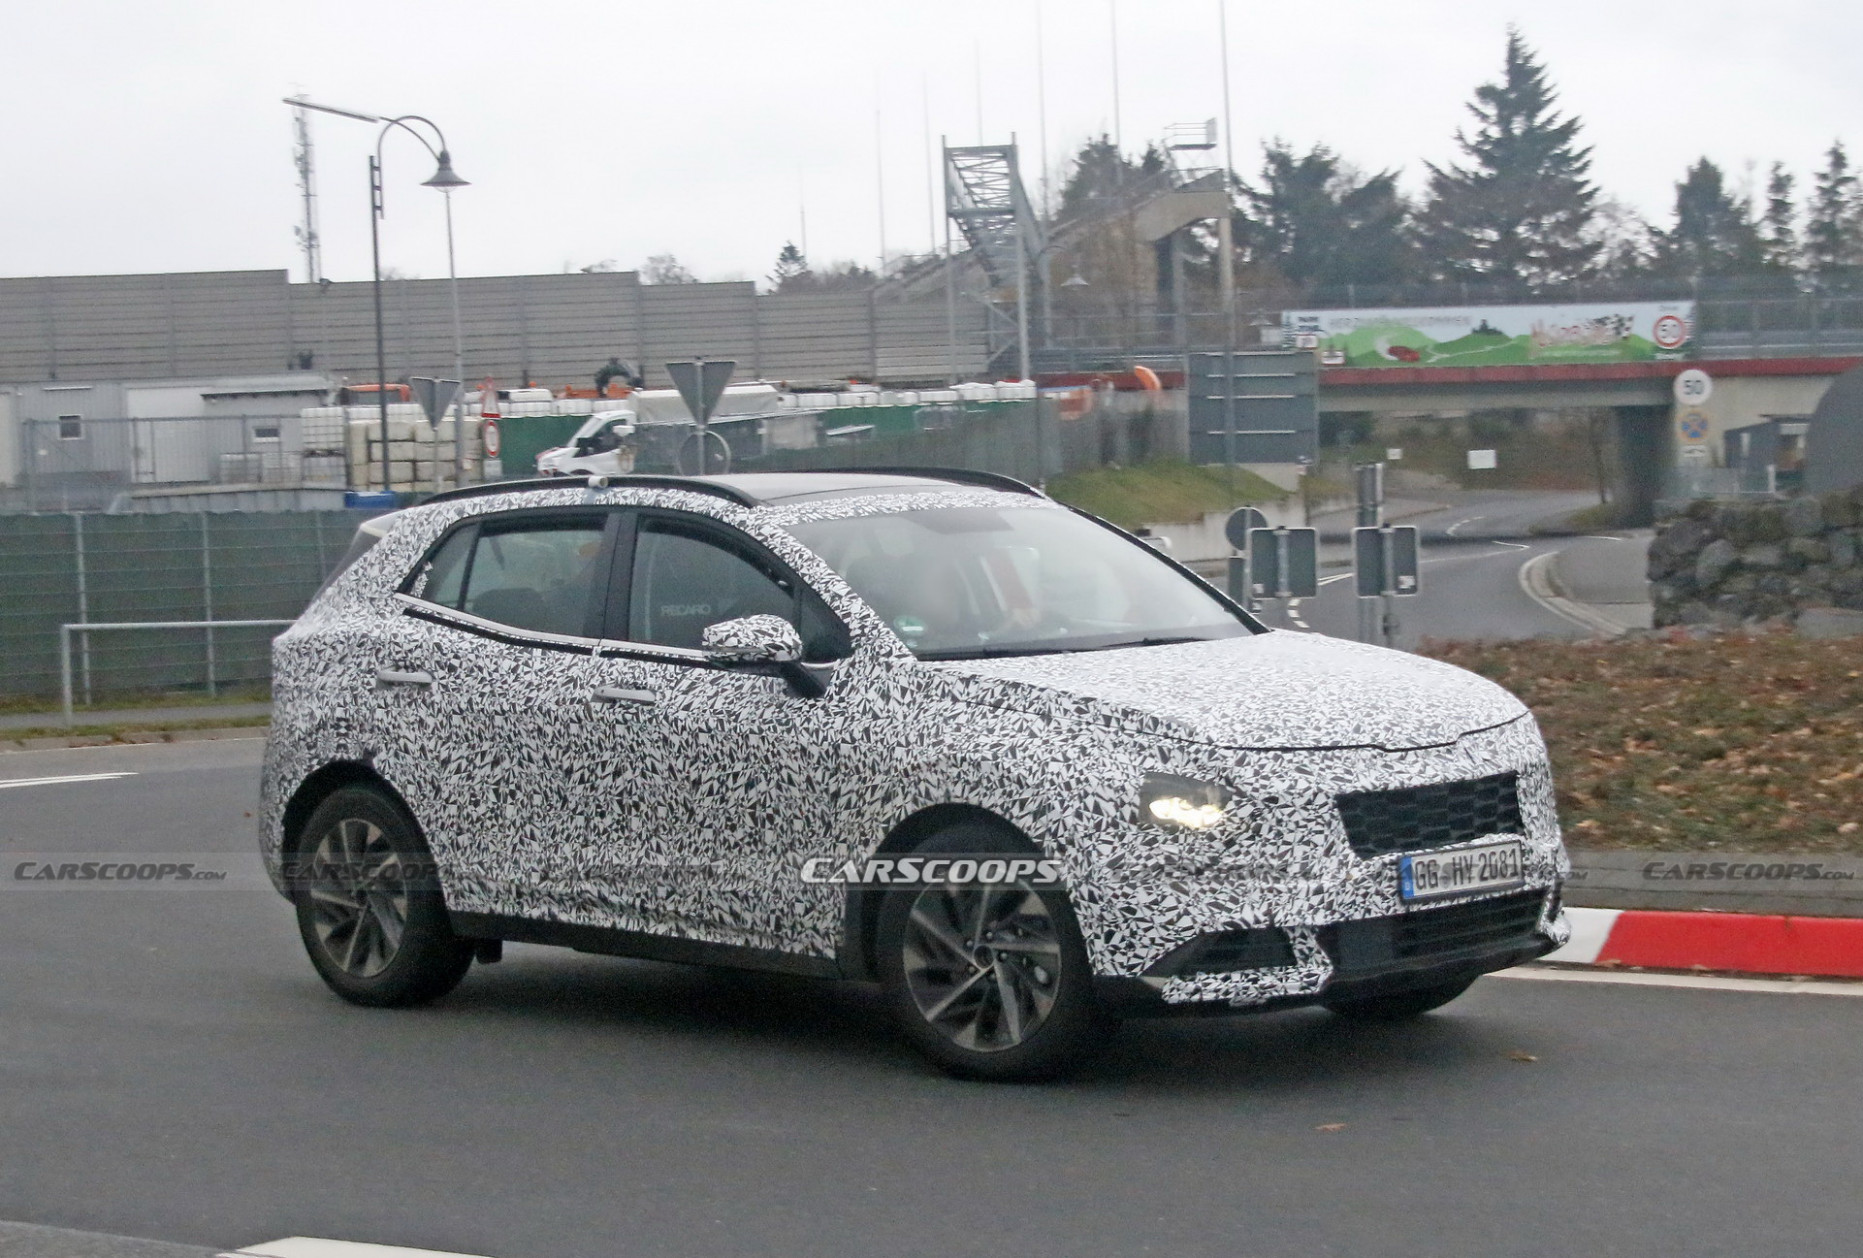 New Model and Performance Kia In 2022